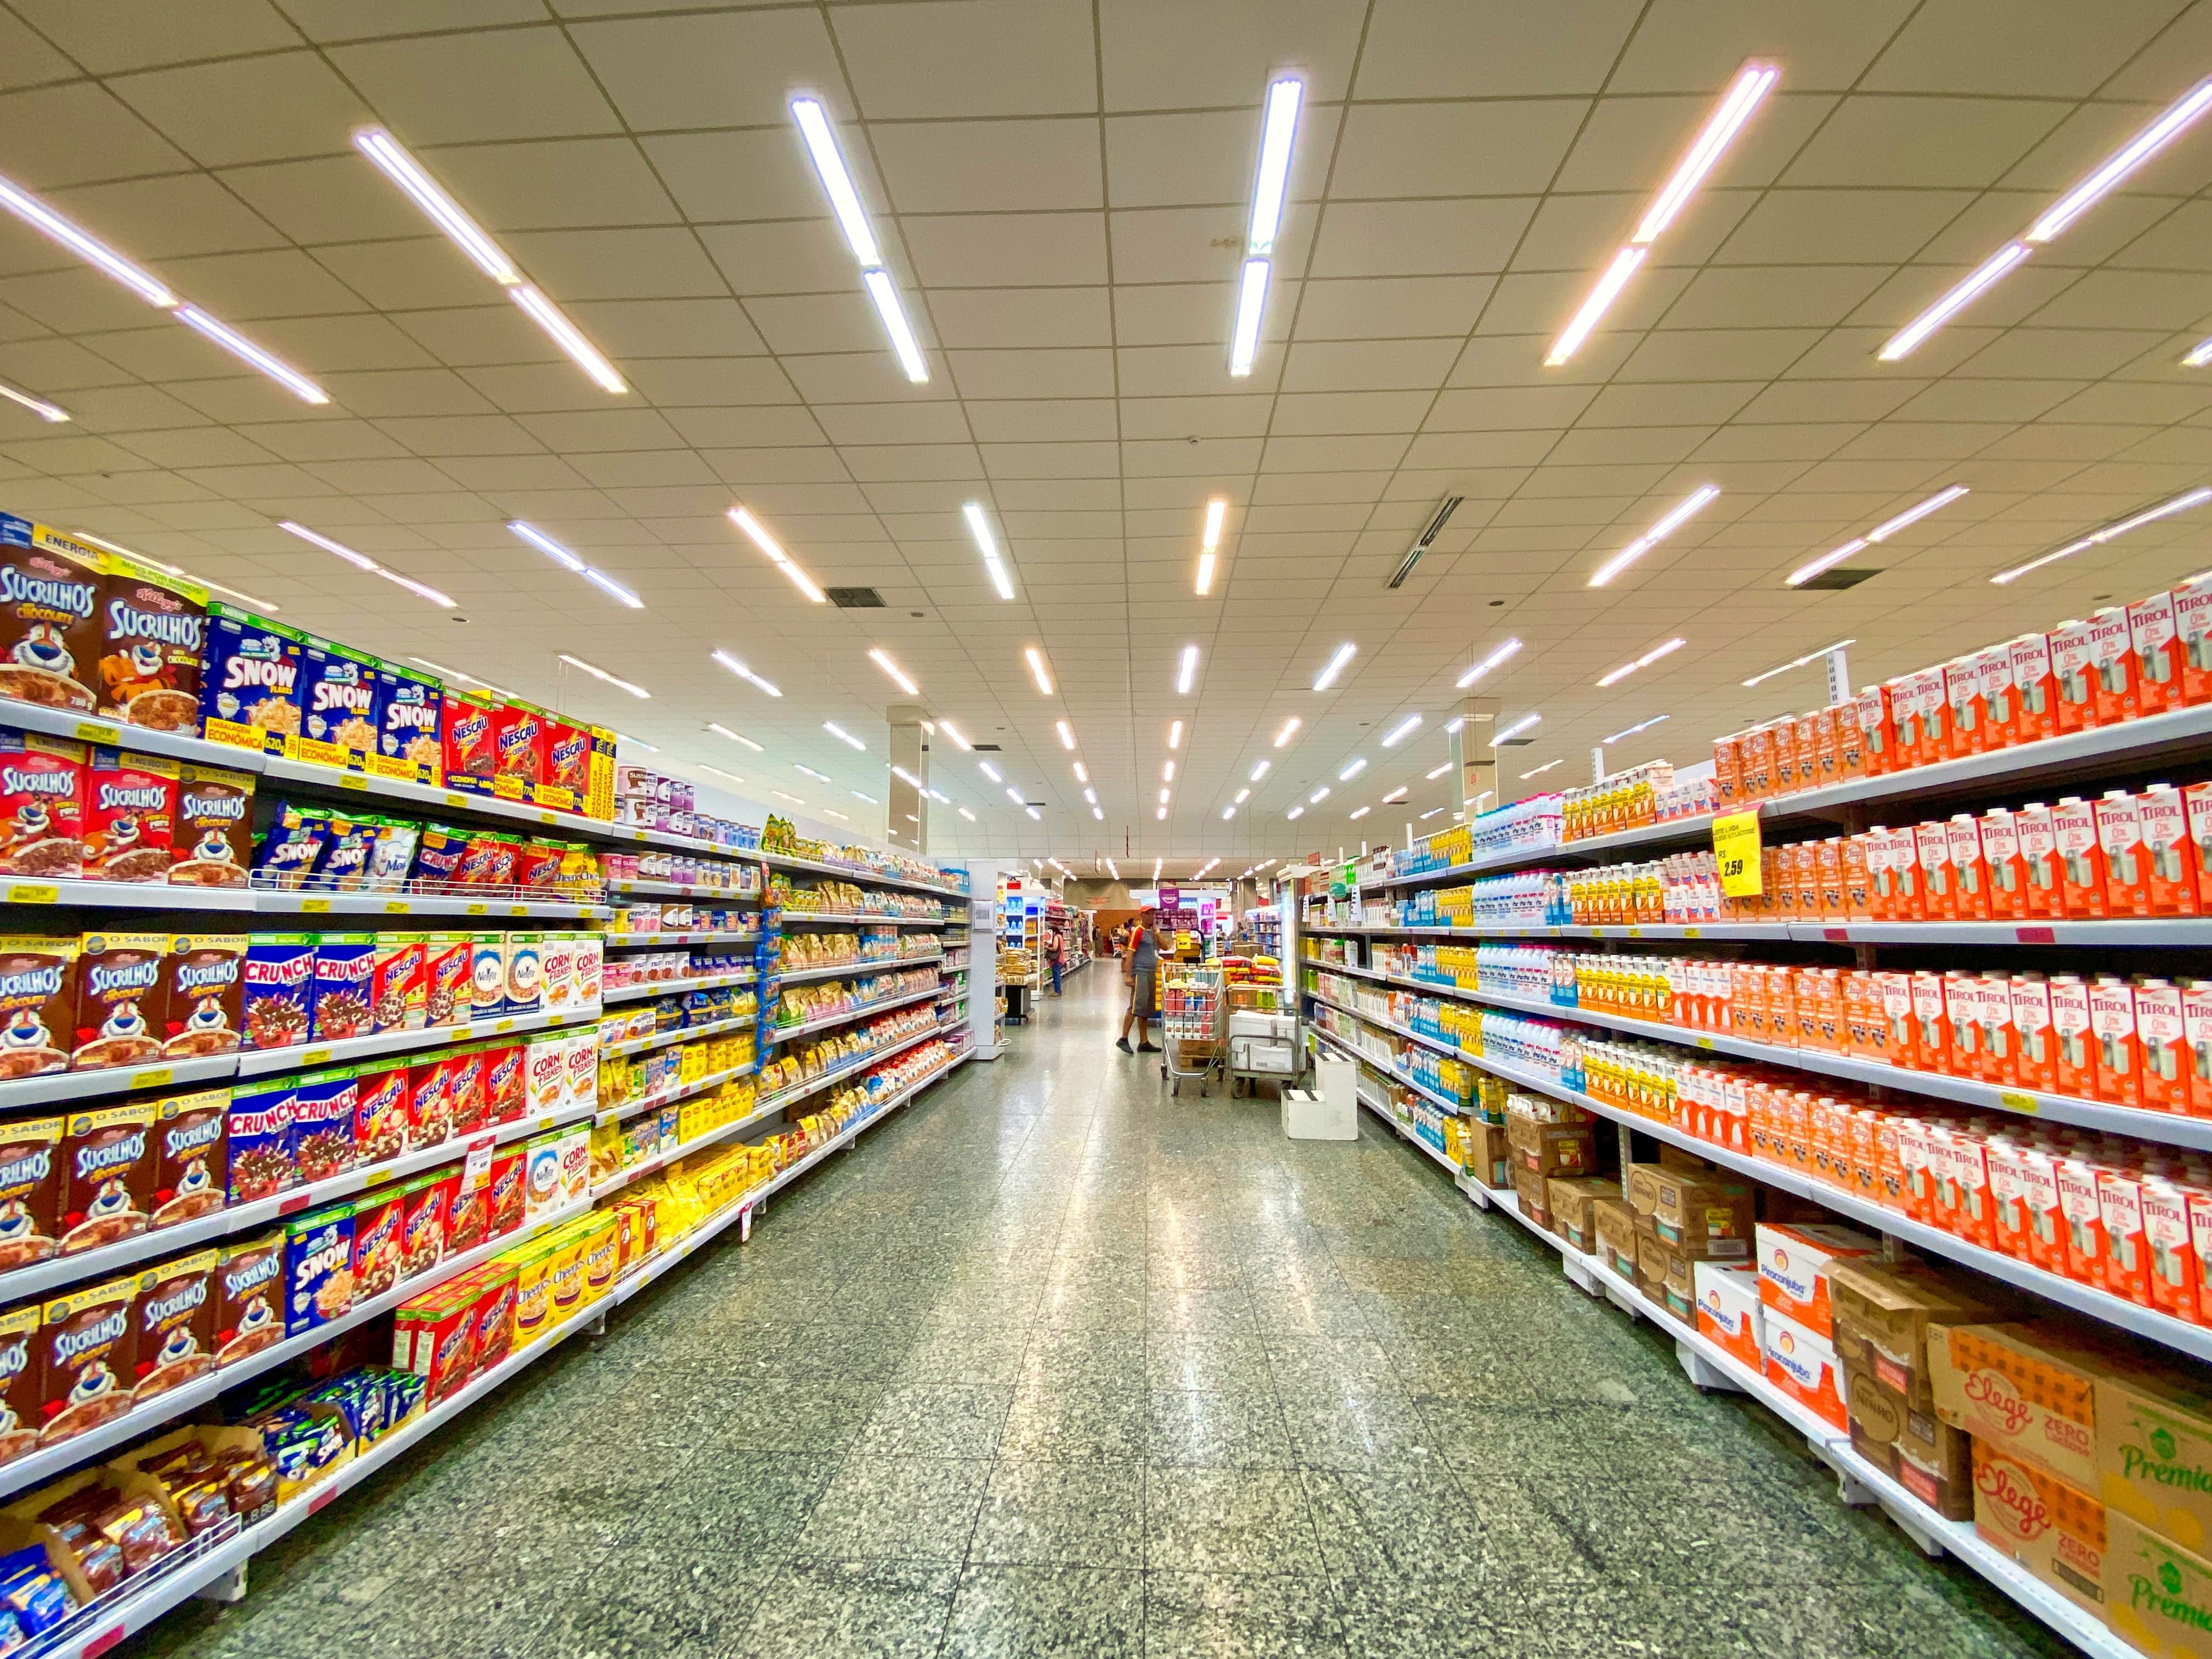 Image of shelves inside a grocery store